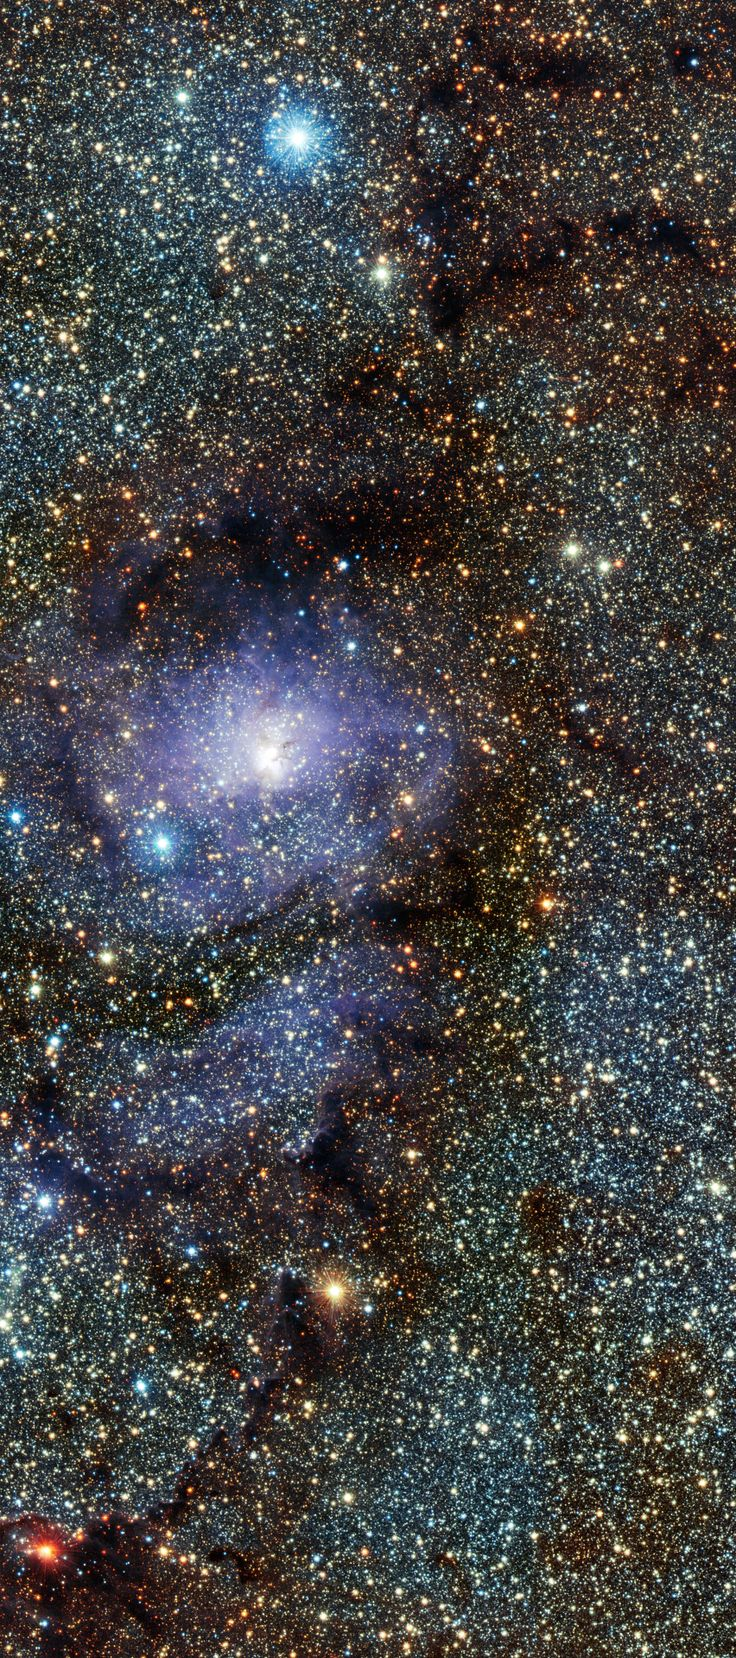 429 best images about Space on Pinterest